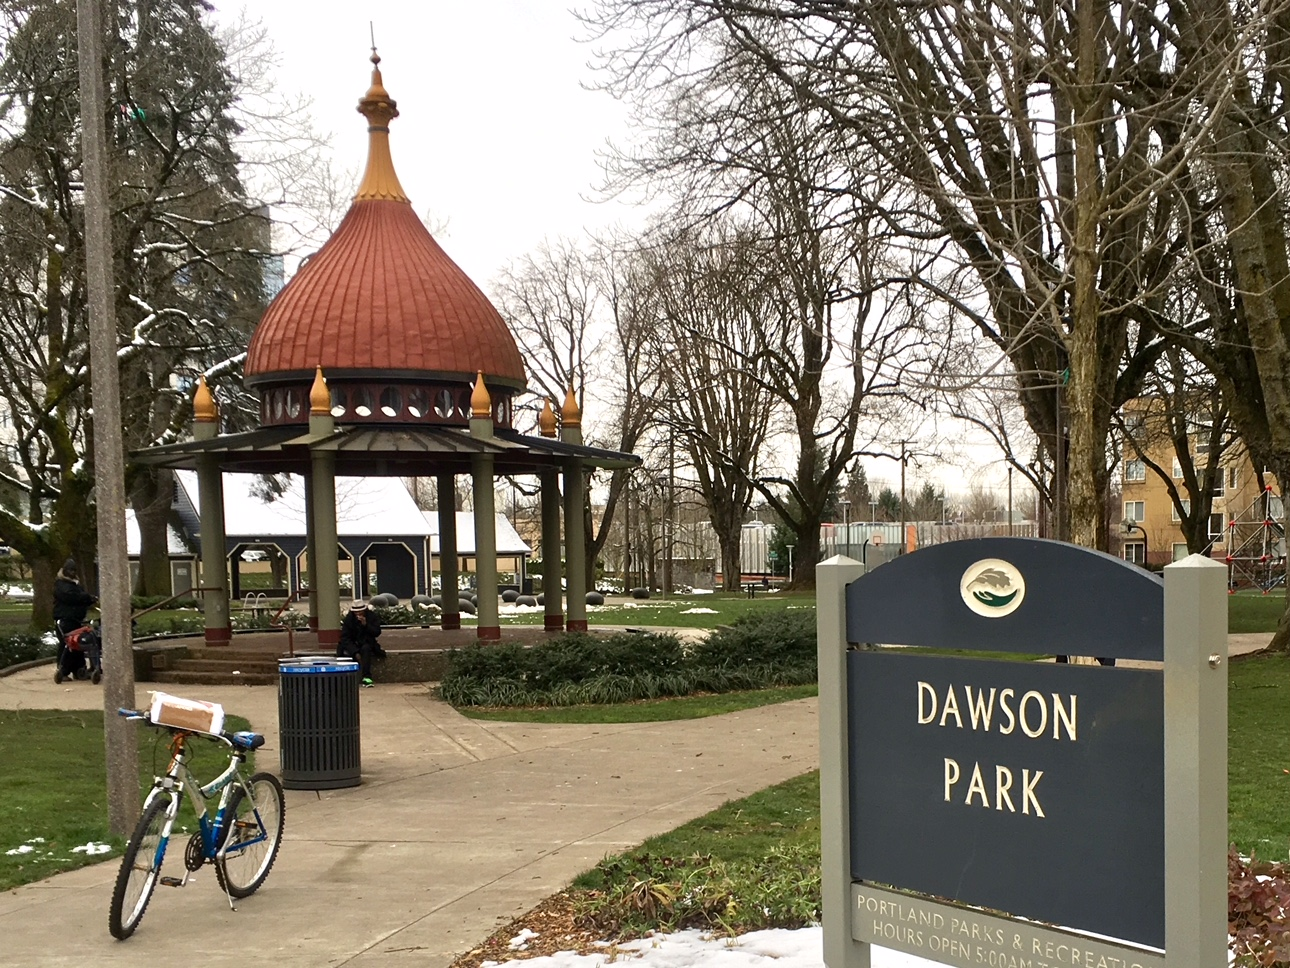 An Onion Dome of a Different Kind – Portland Orbit